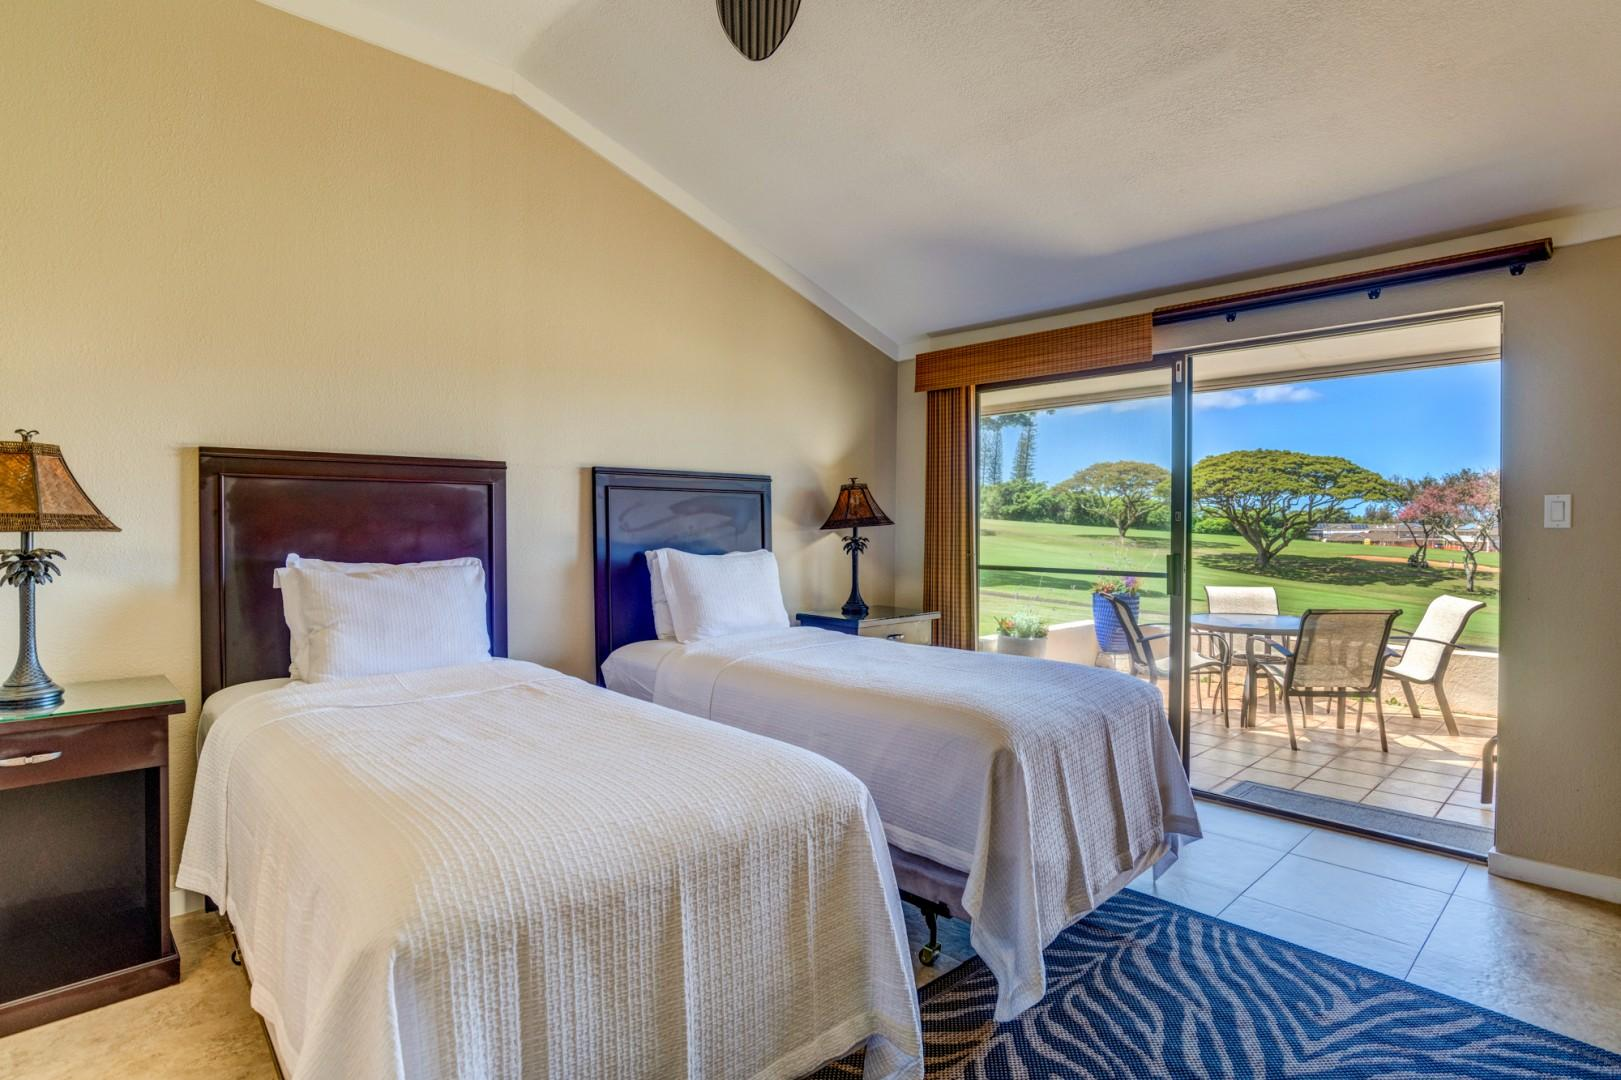 Guest bedroom equipped with twin beds